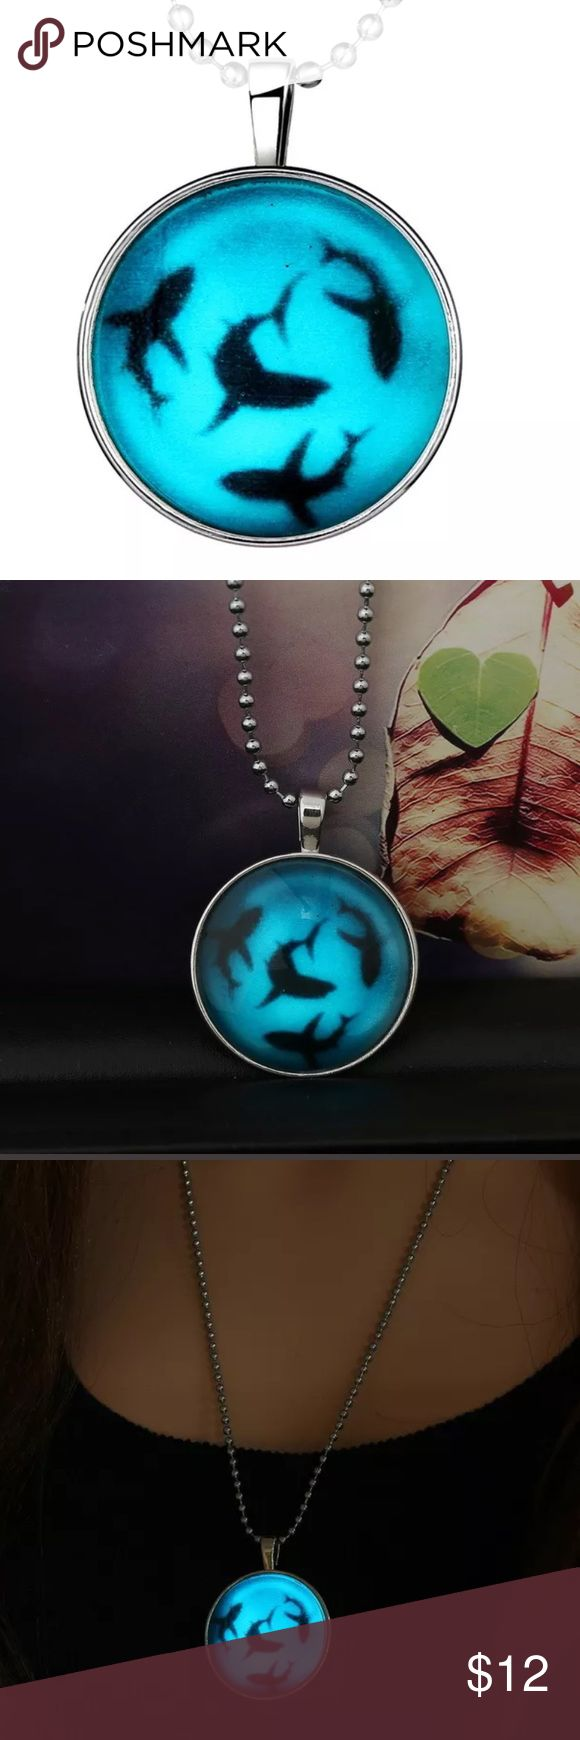 Shark Glow in the Dark Cabochon New Shark Glow in the Dark Cabochon New Posherpooch Jewelry Necklaces